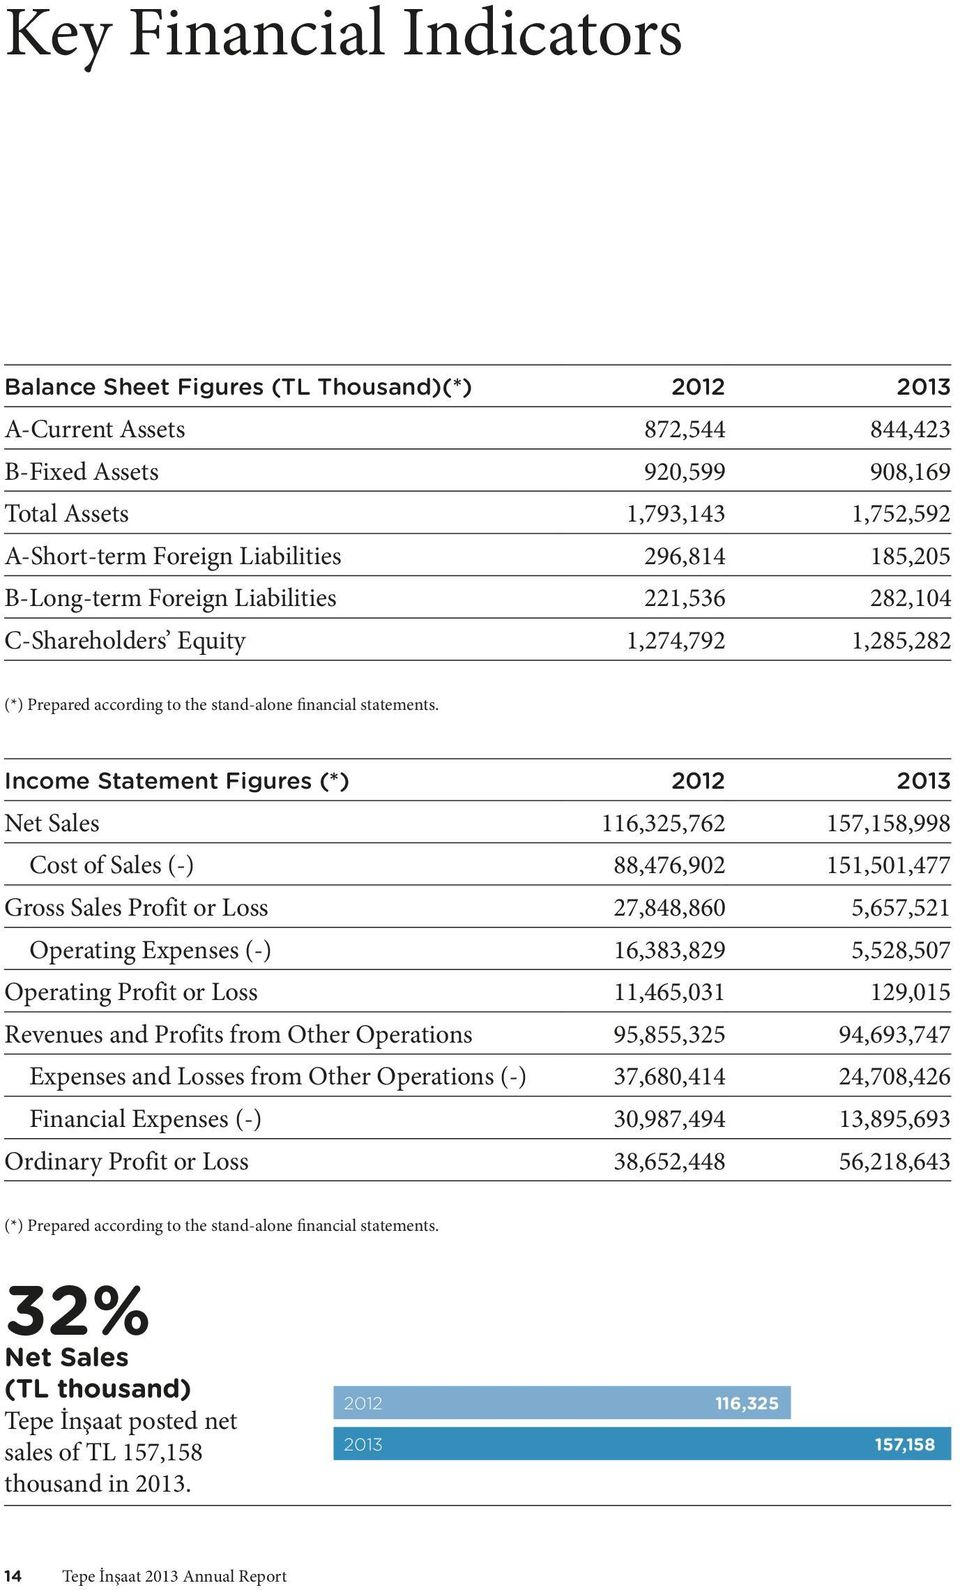 Income Statement Figures (*) 2012 2013 Net Sales 116,325,762 157,158,998 Cost of Sales (-) 88,476,902 151,501,477 Gross Sales Profit or Loss 27,848,860 5,657,521 Operating Expenses (-) 16,383,829